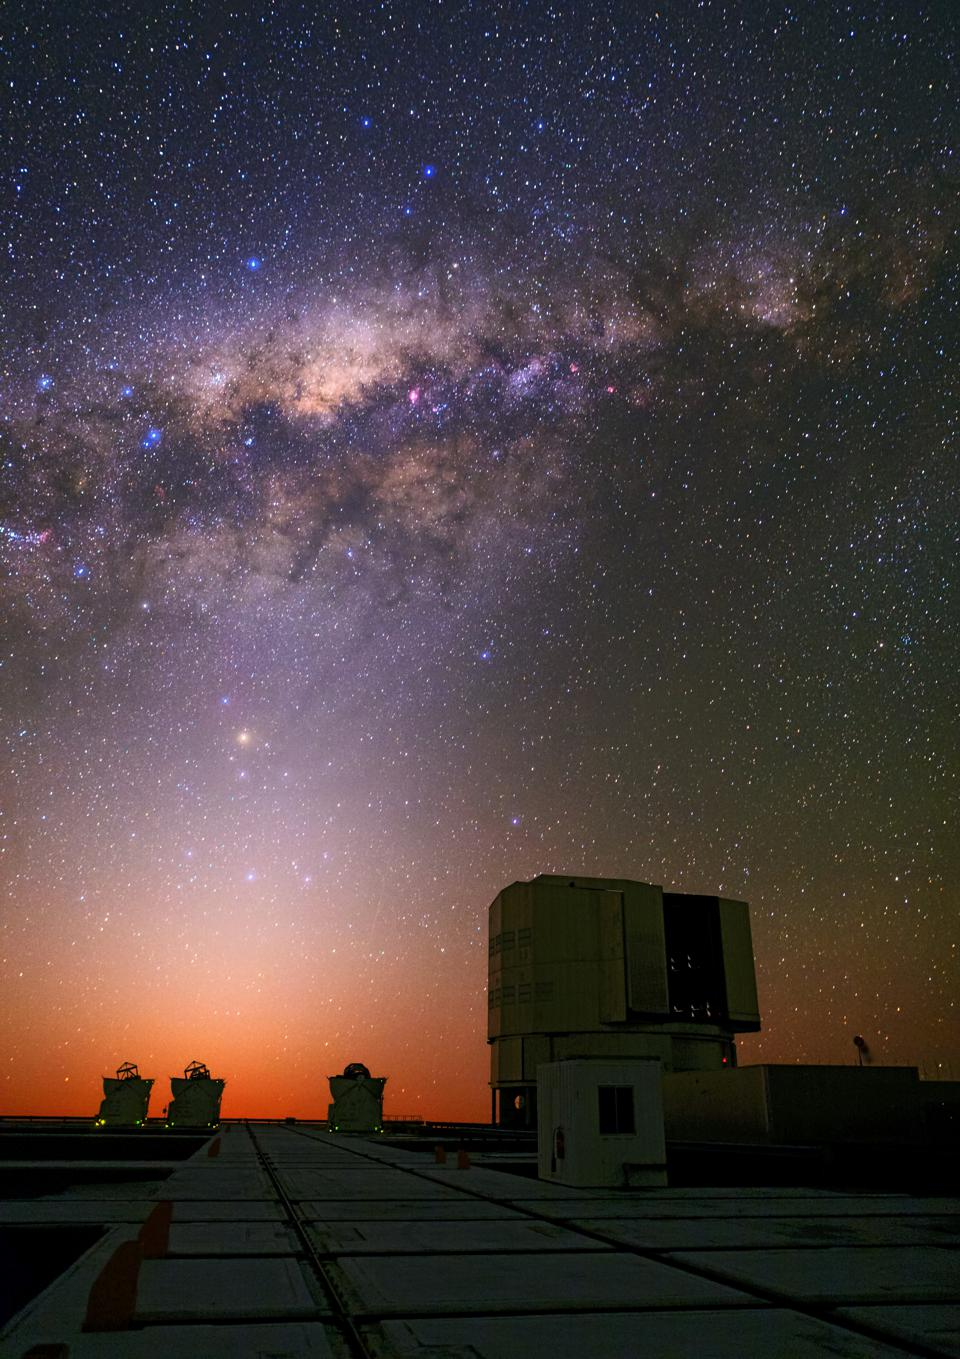 The Milky Way and the night sky's light are joined by the zodiacal light in this photo.